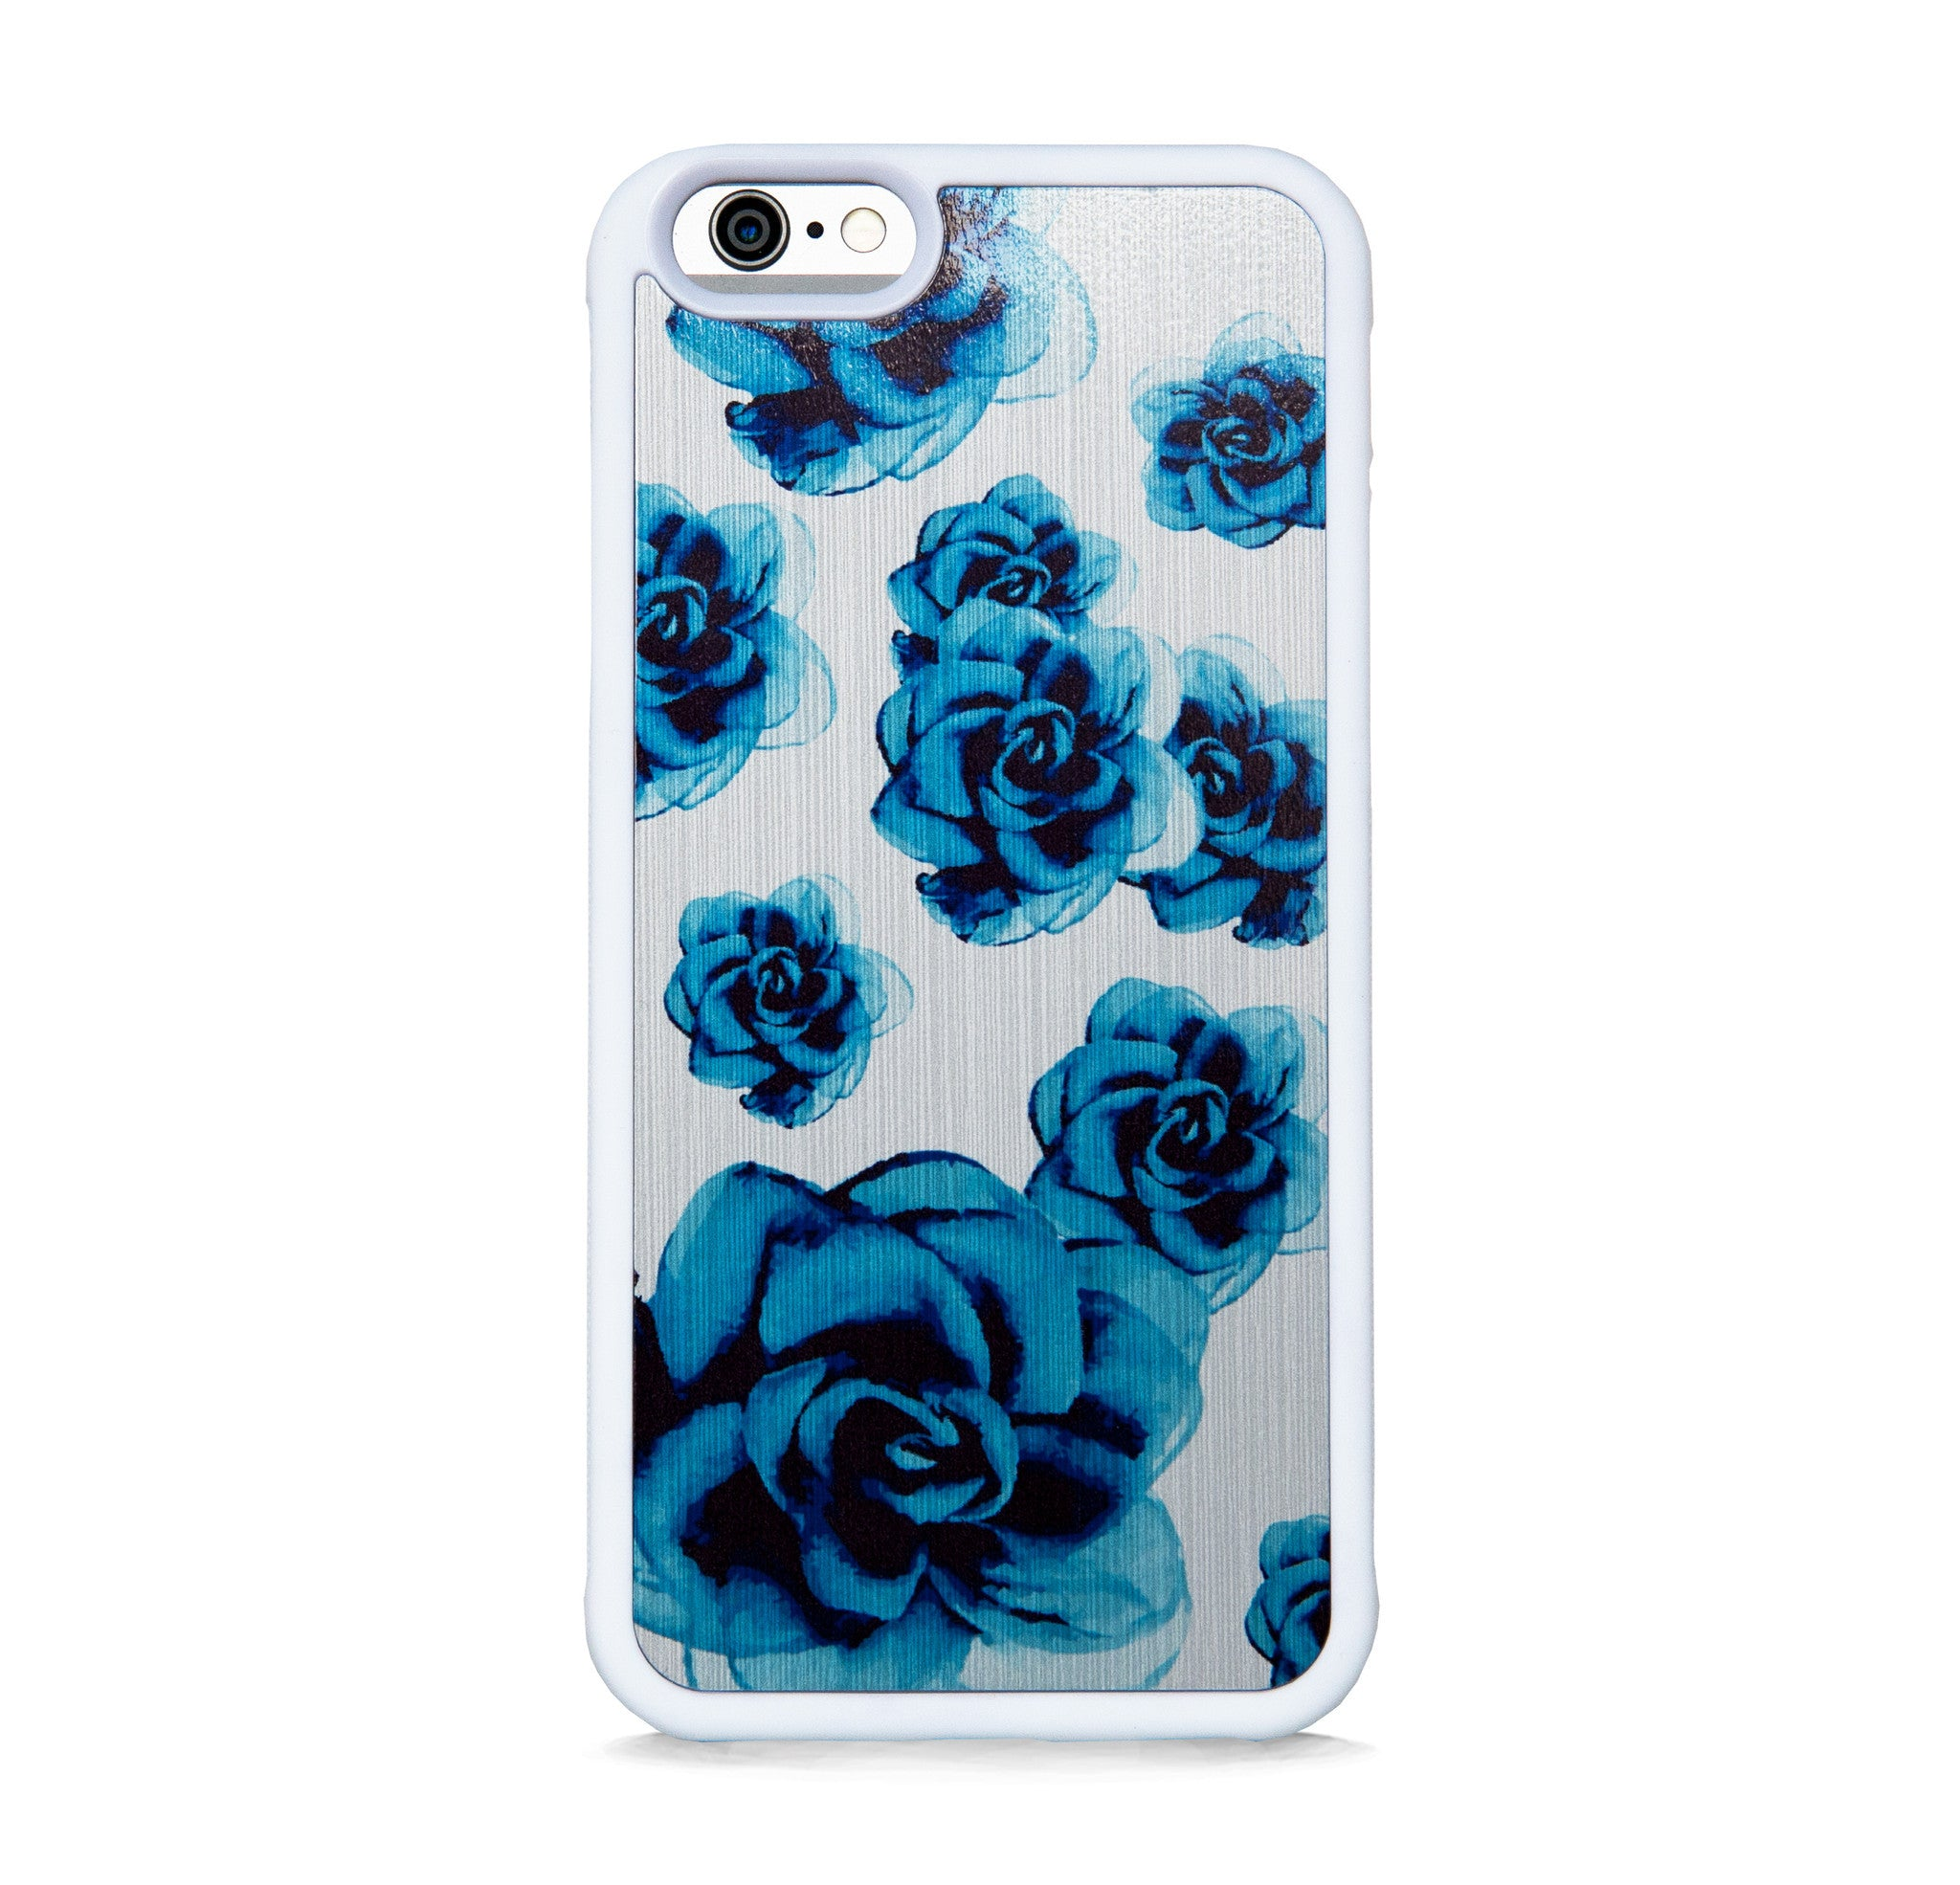 BLUE FLOWERS ON BRUSHED SILVER FOR IPHONE 6/6s